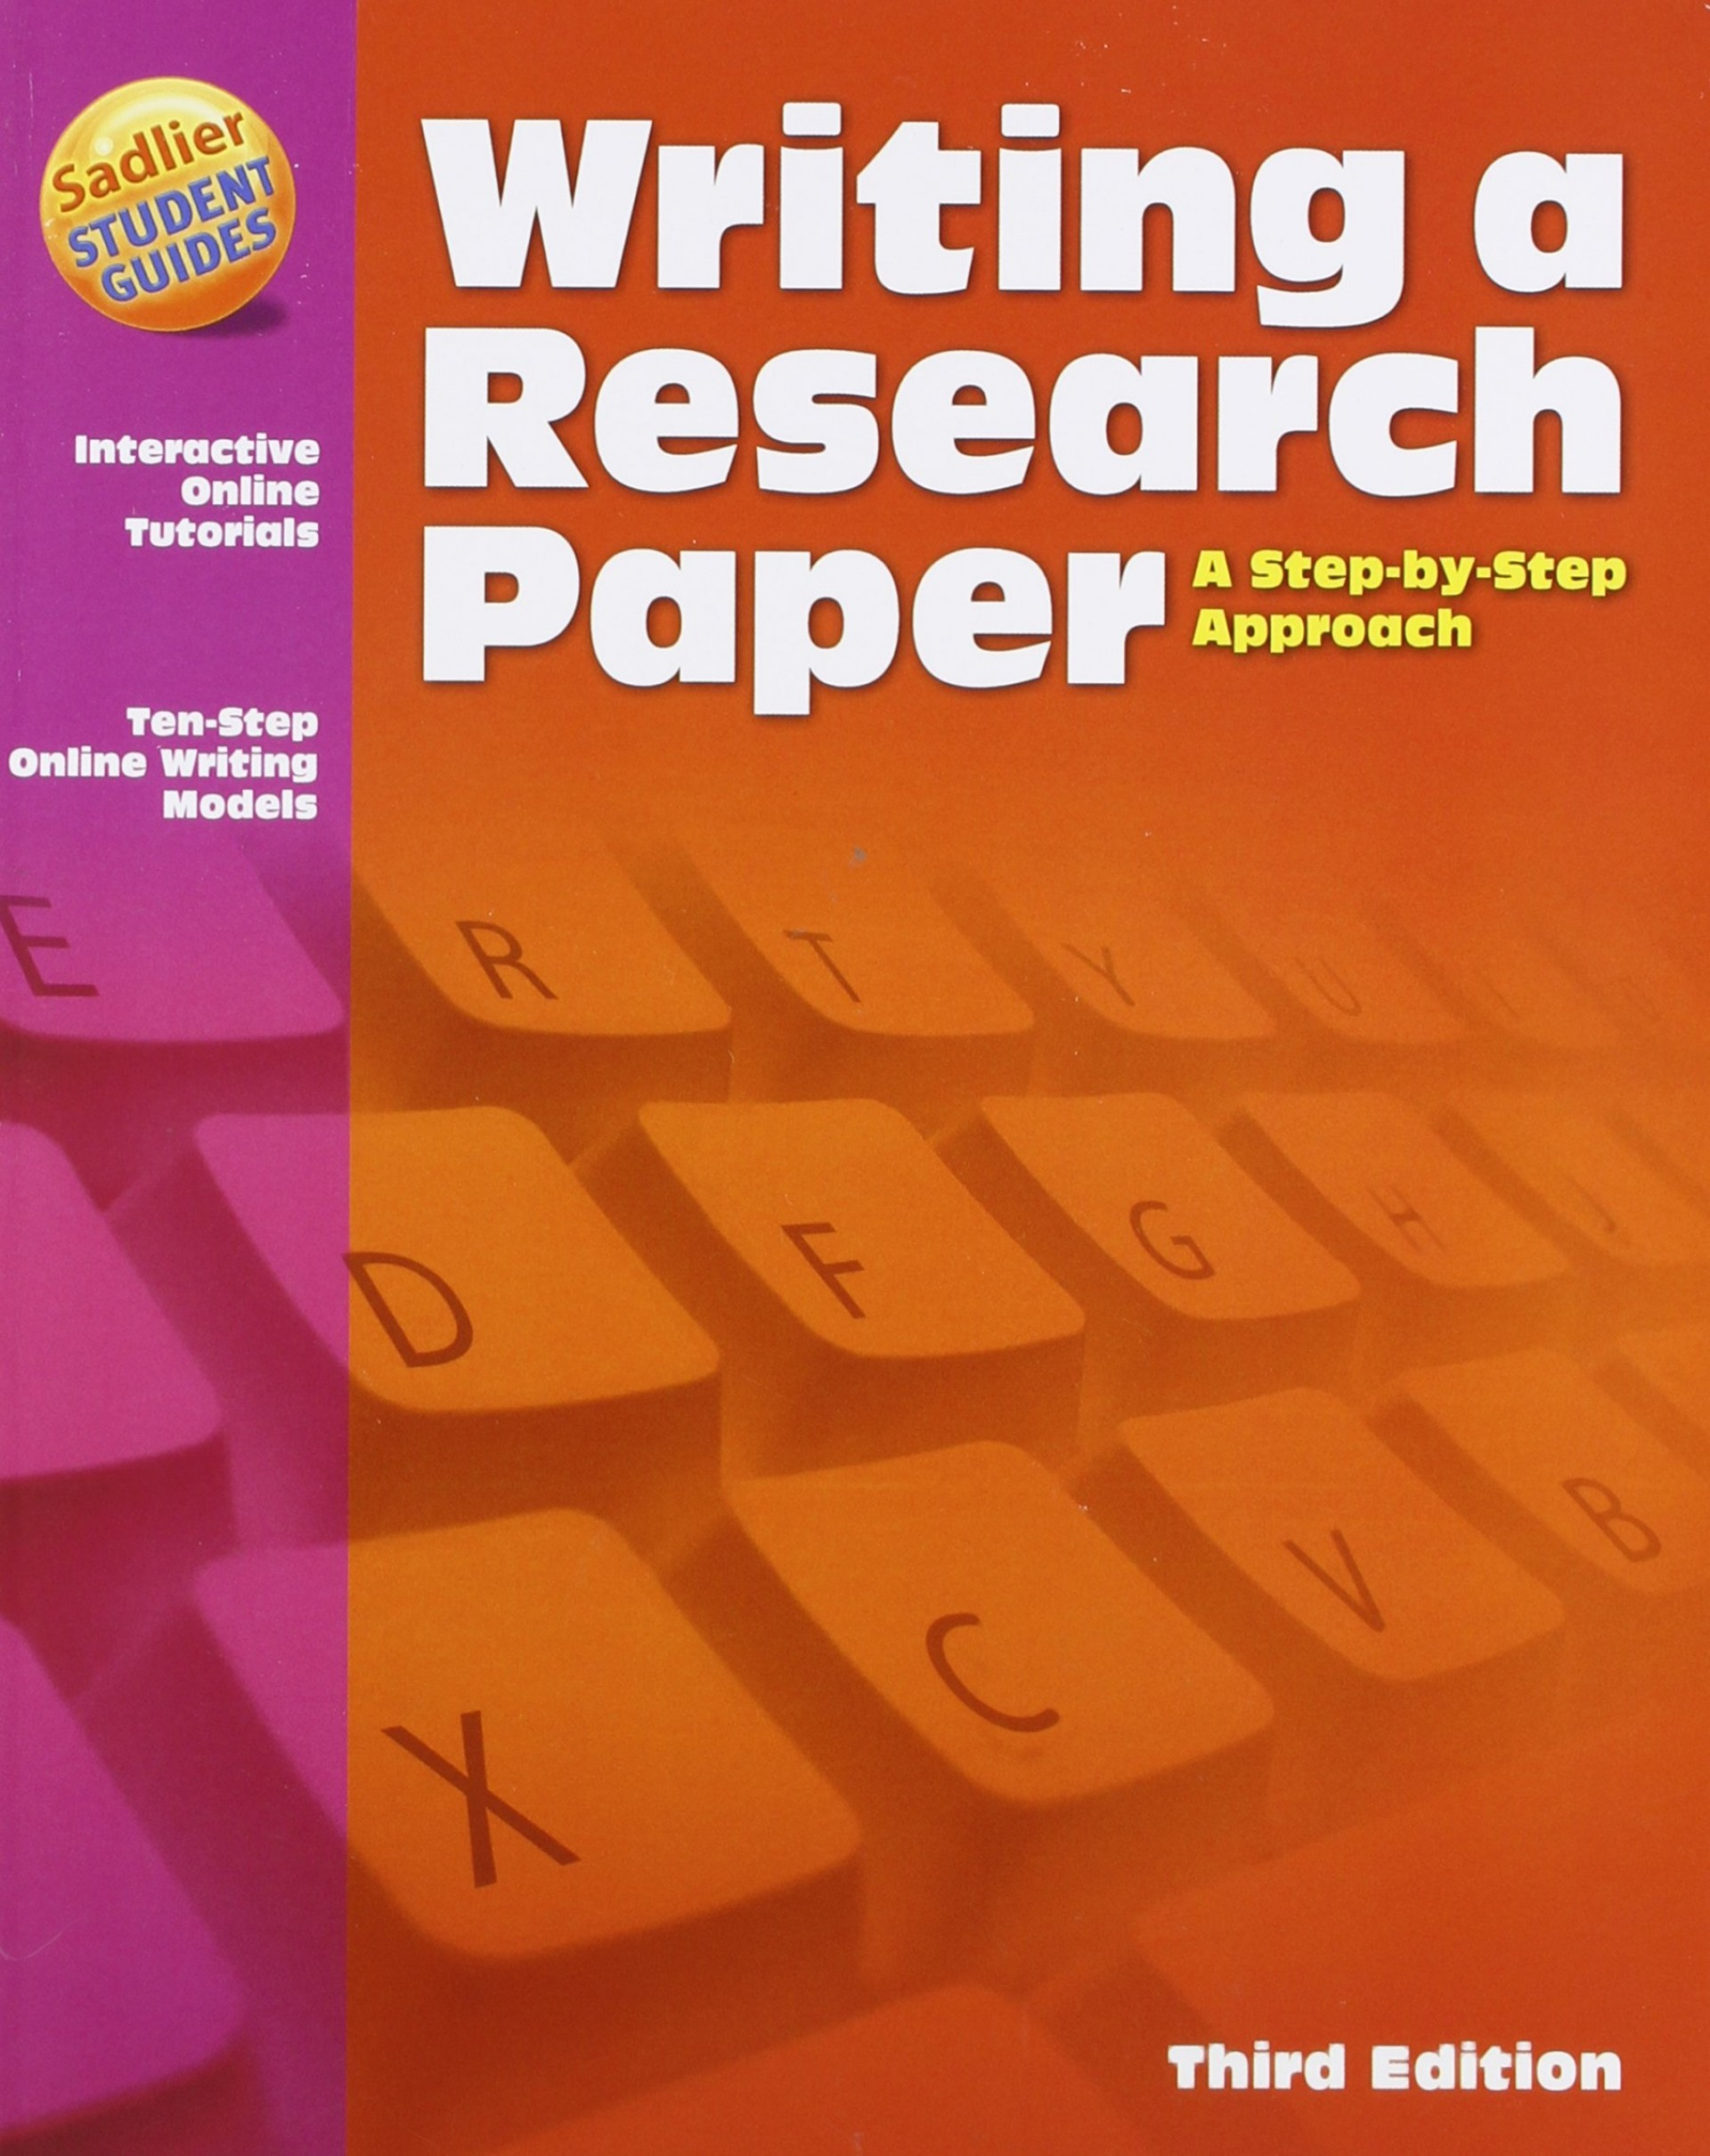 019 Research Paper Writing Papers Unique A Complete Guide 15th Edition Ebook 16th Pdf Free 1920